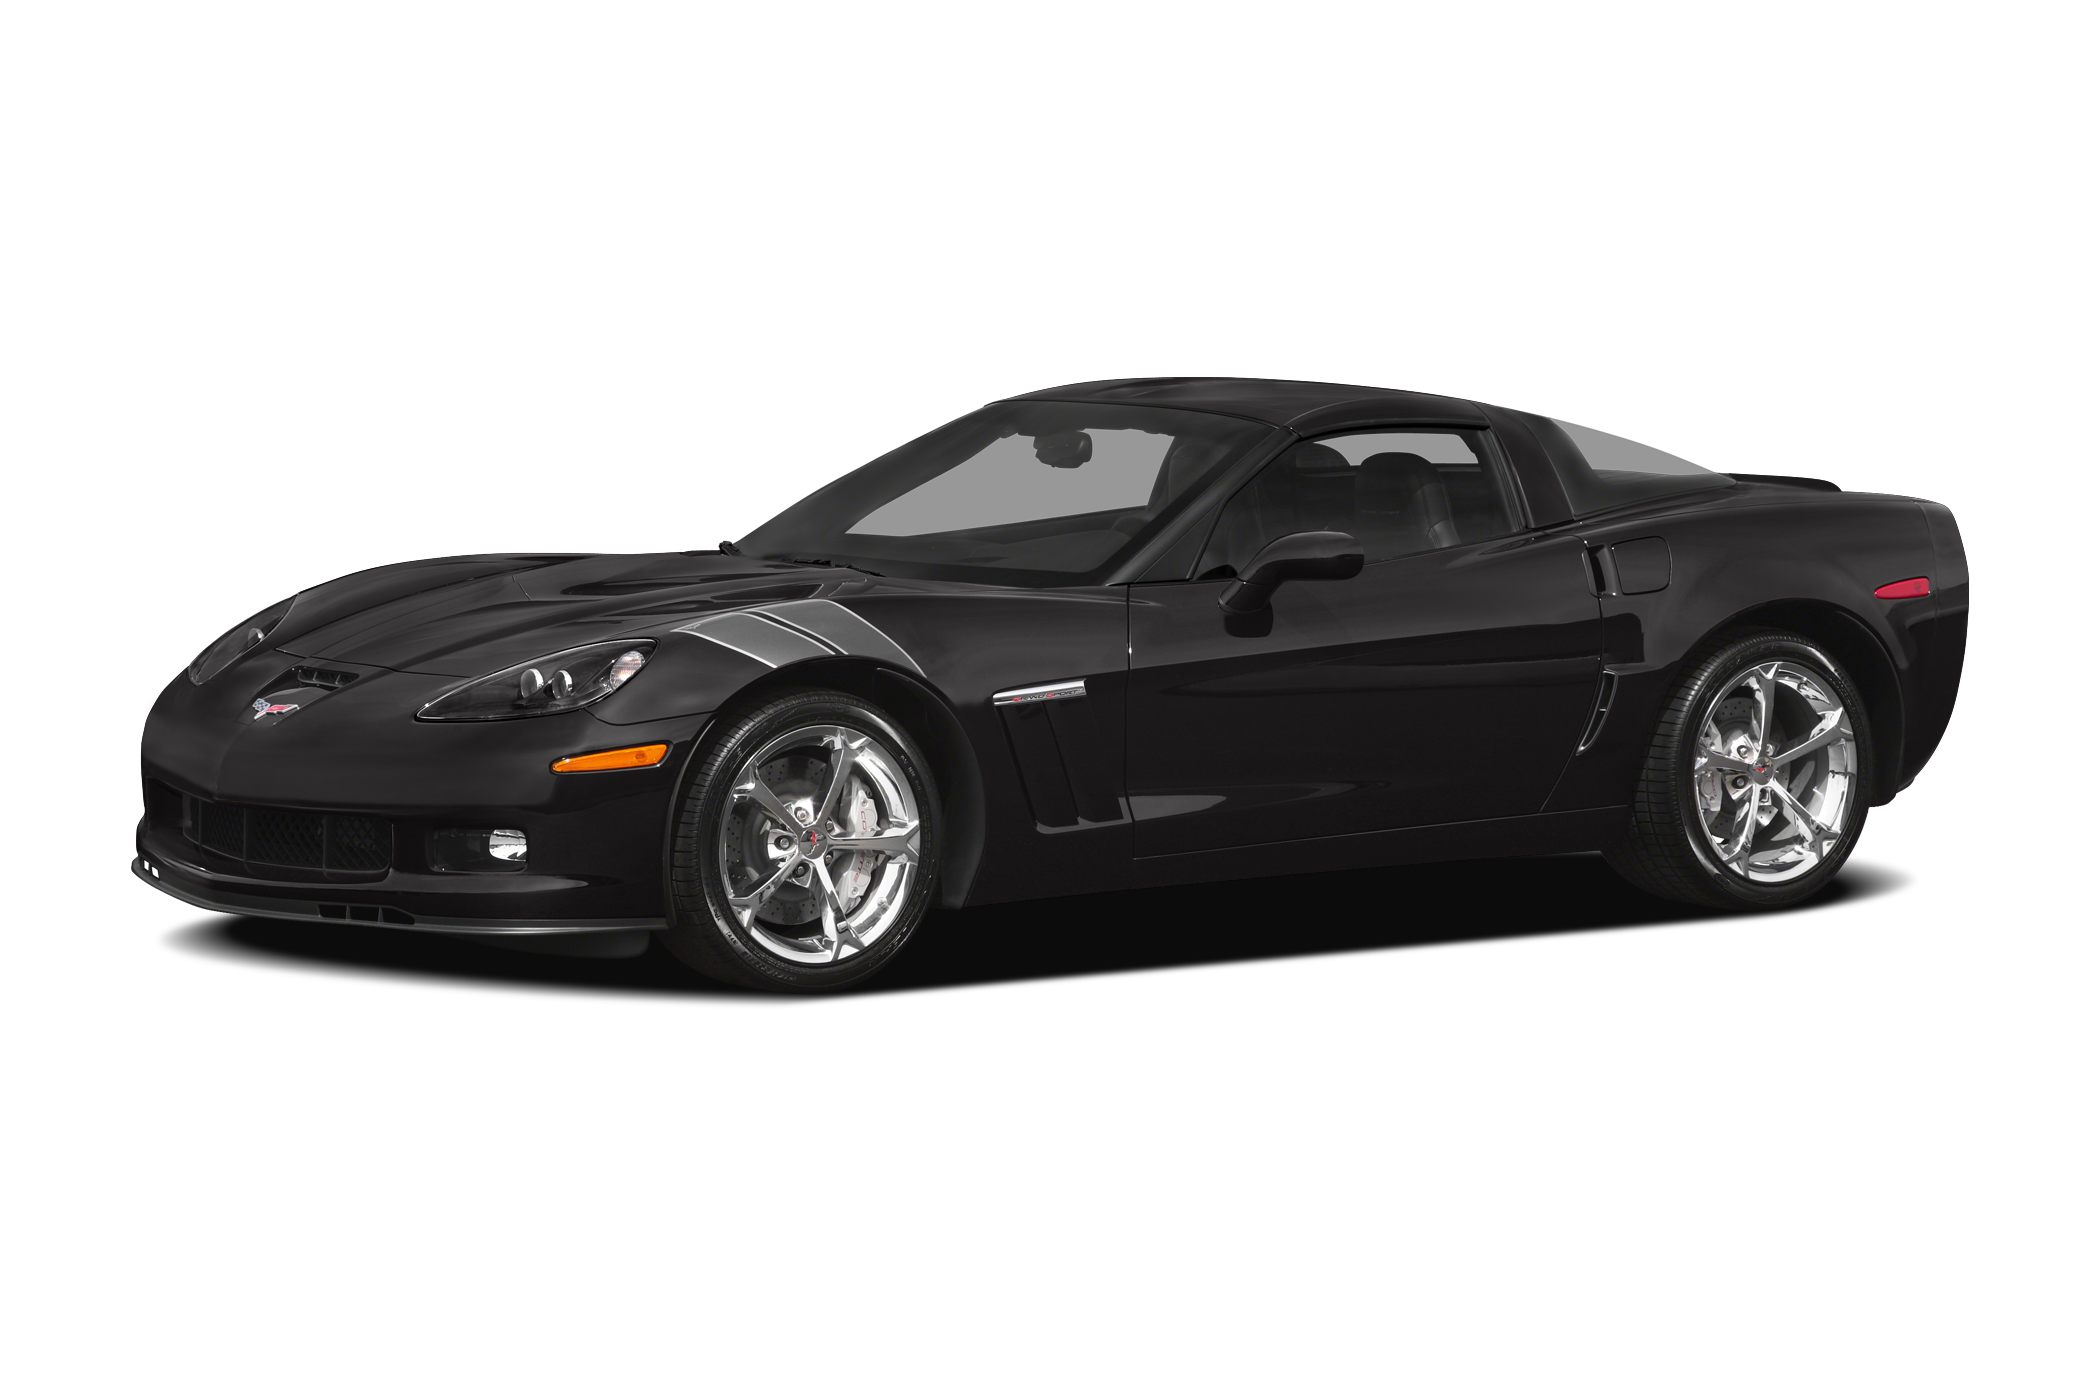 2012 Chevrolet Corvette Grand Sport Coupe for sale in Easley for $54,989 with 8,342 miles